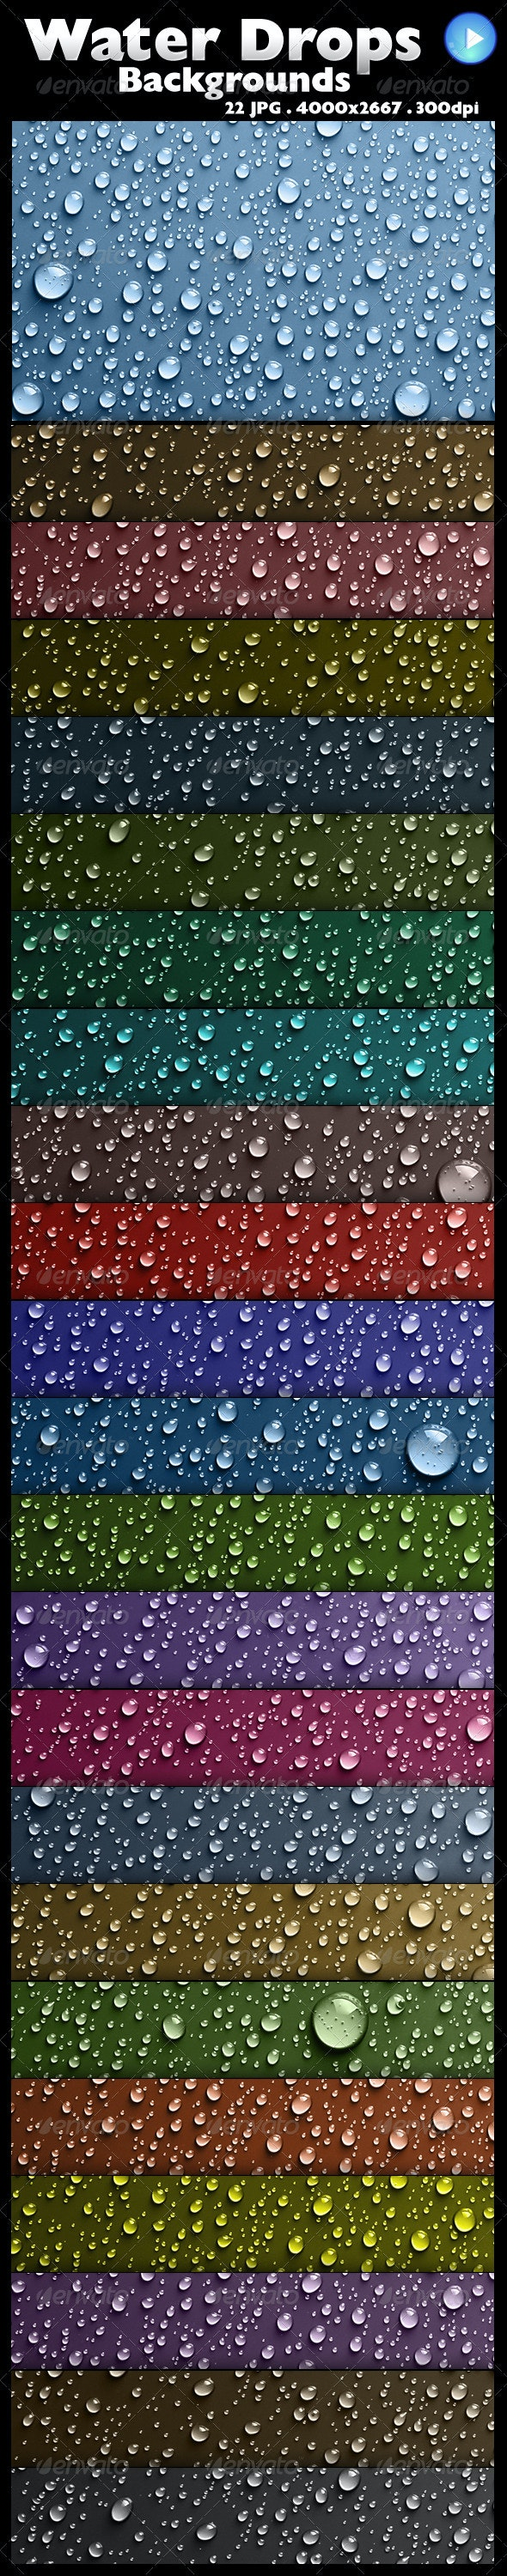 22 Water Drops Backgrounds - Backgrounds Graphics